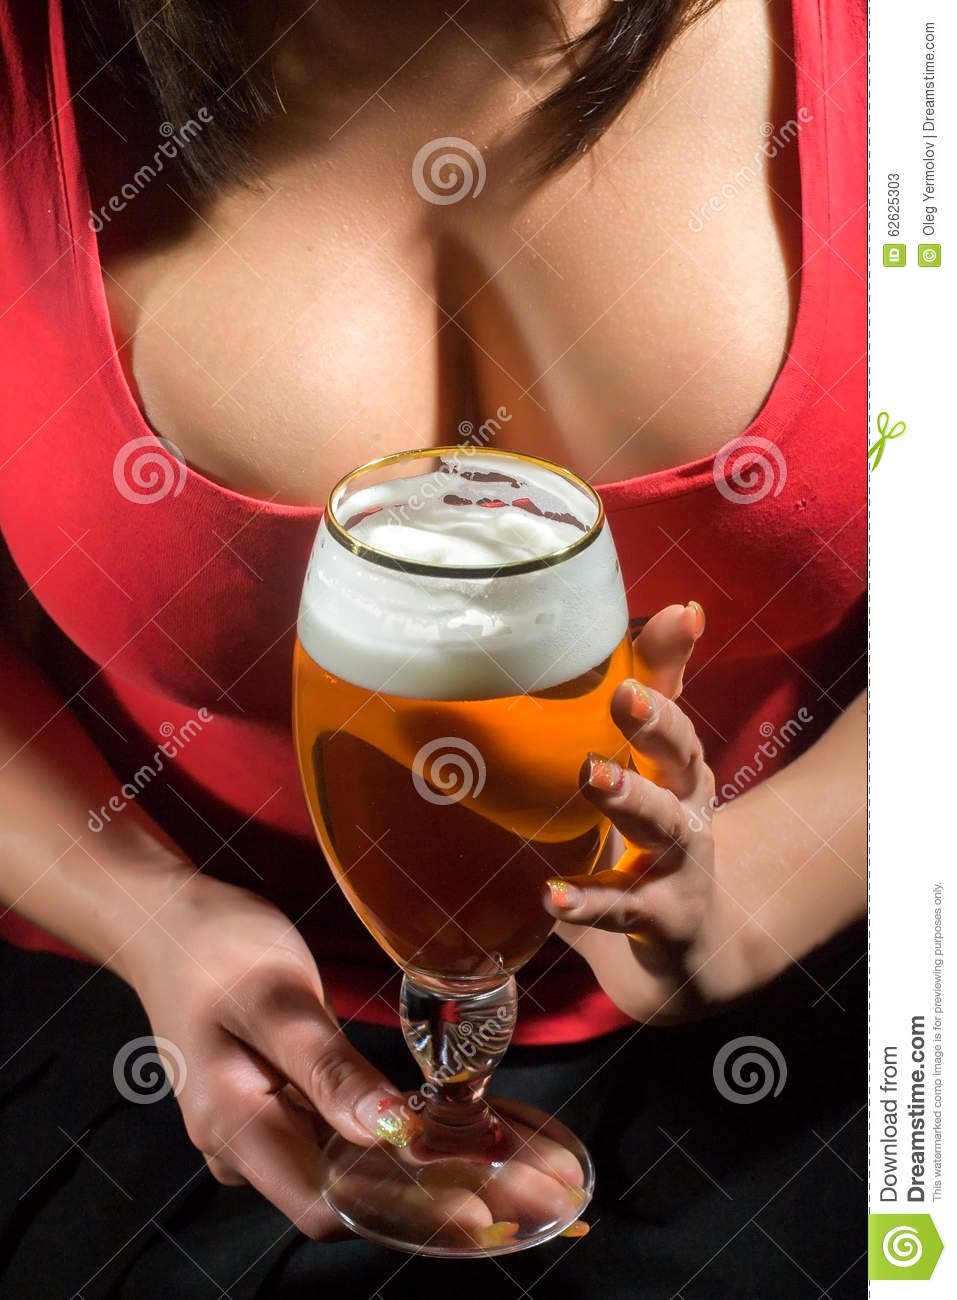 Woman in red t-shirt holding glass of beer